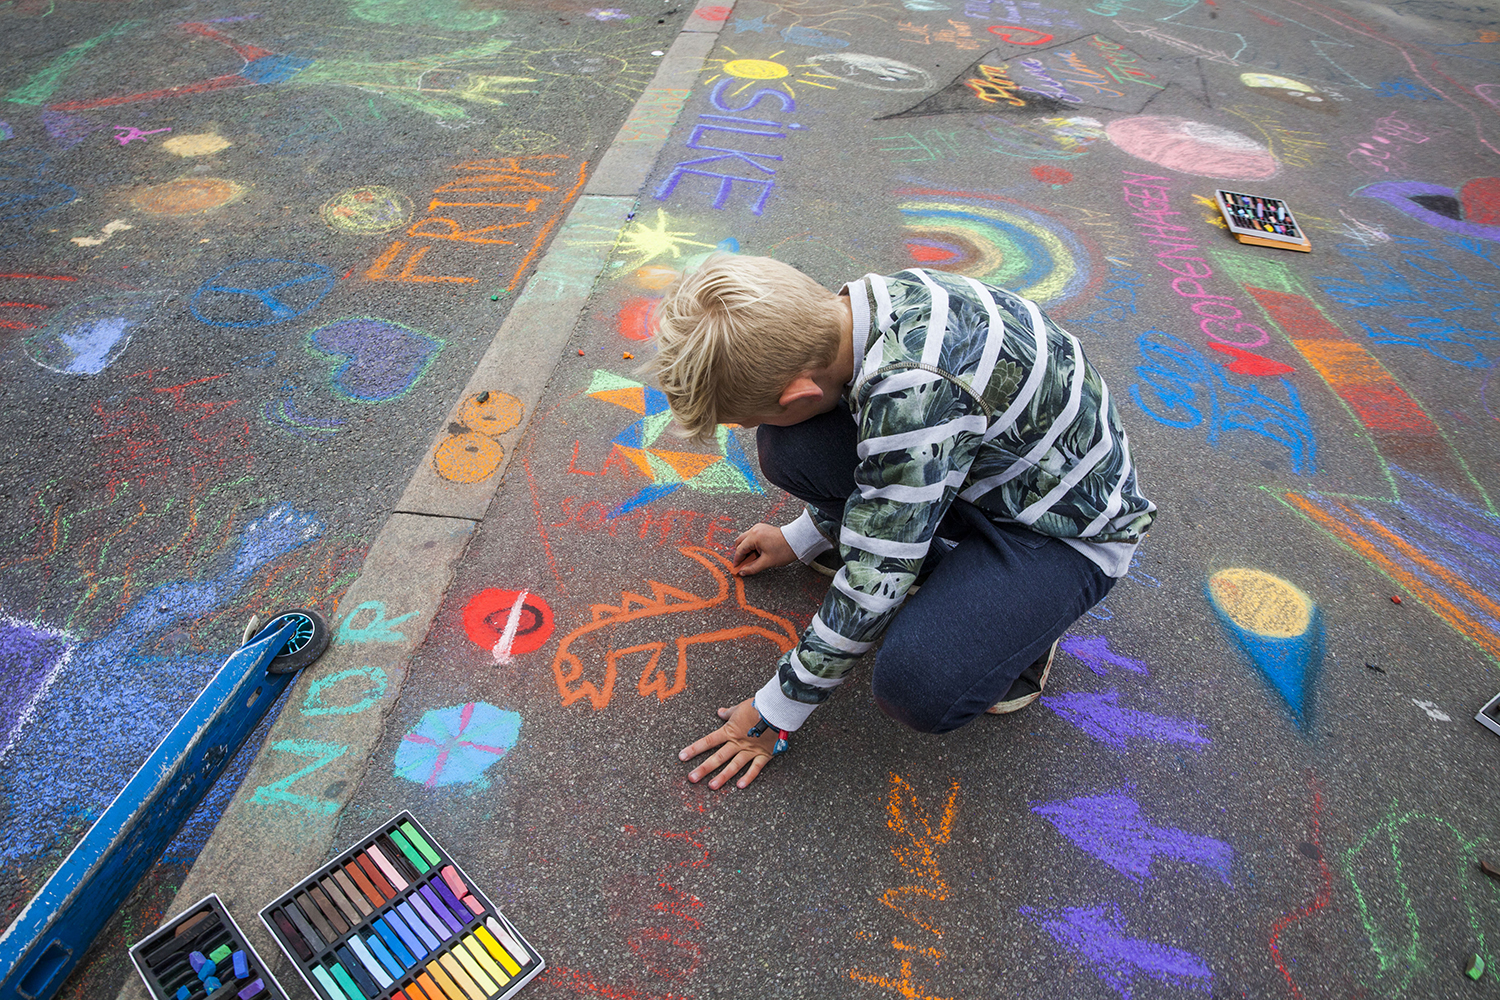 chalk_painting_day_18-09-16_helenalundquist_25